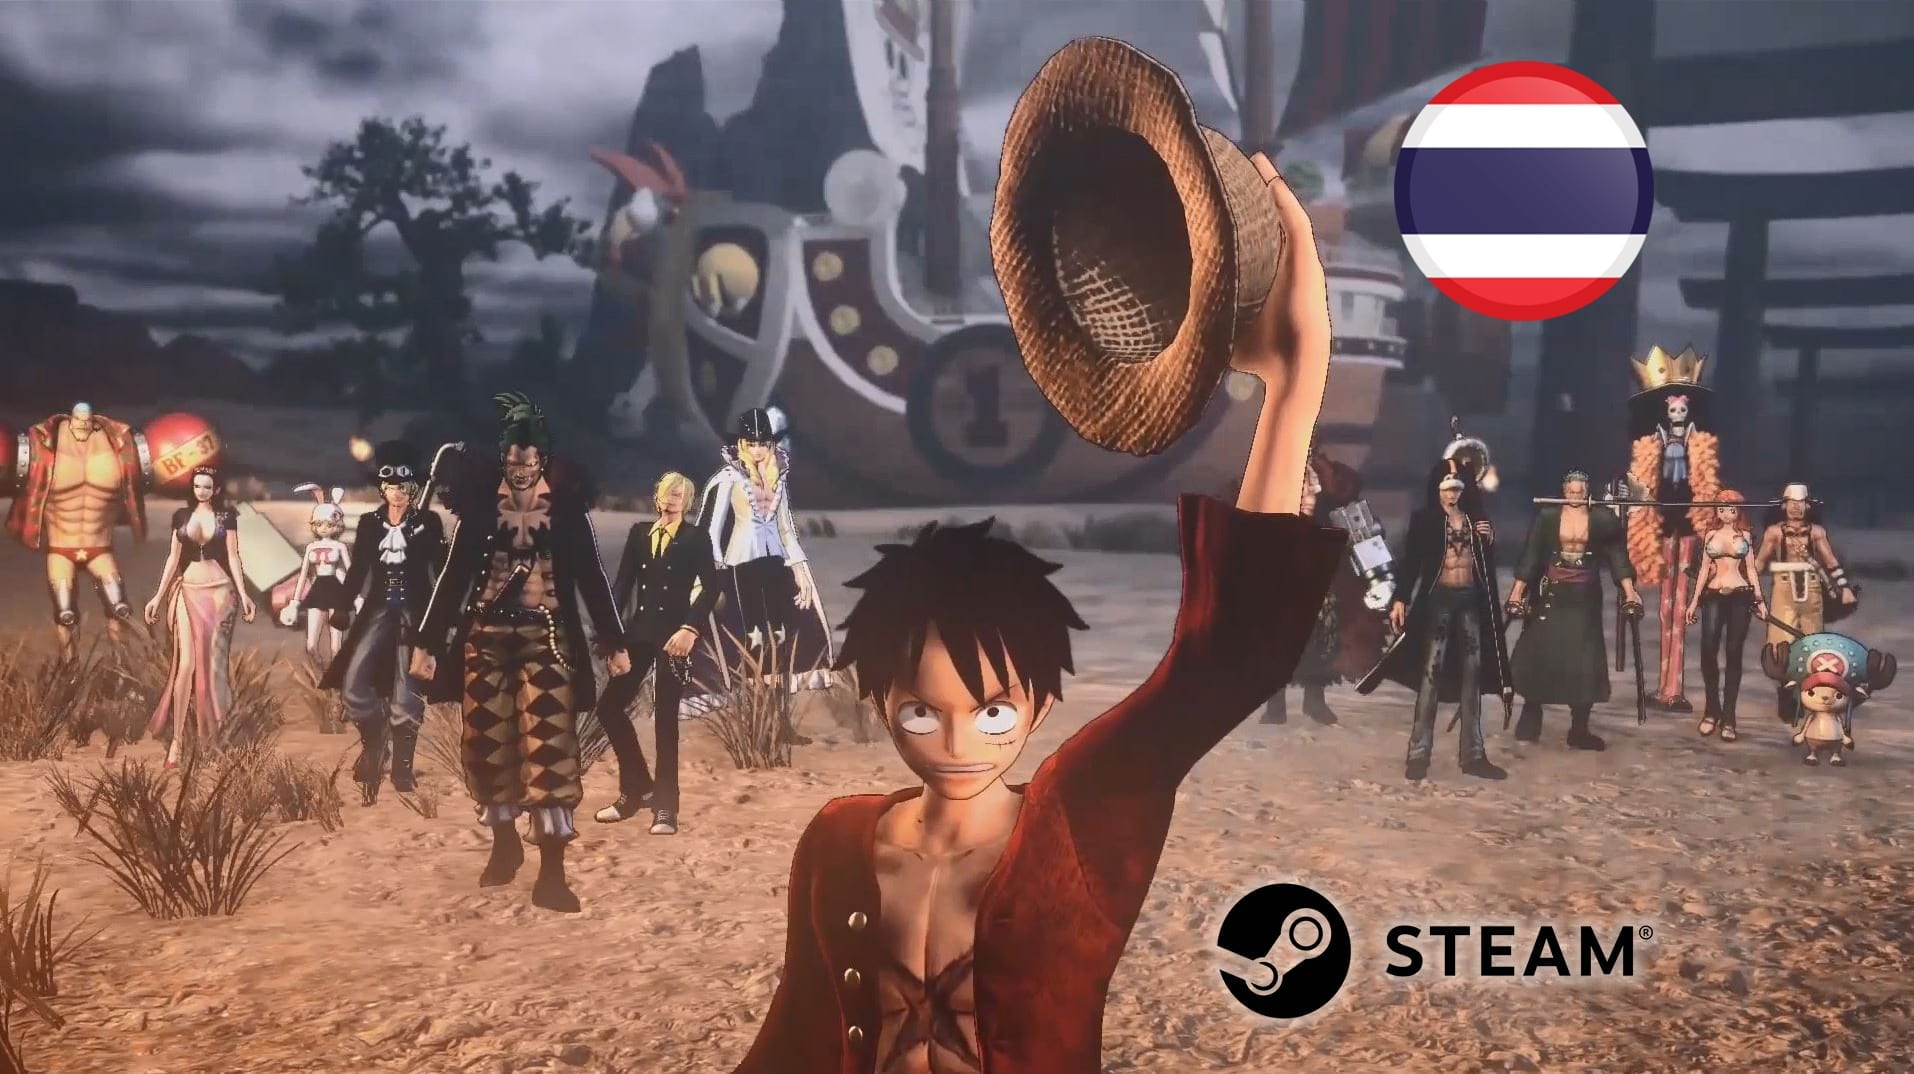 ONE PIECE: PIRATE WARRIORS 4 Save Issues [STEAM®]